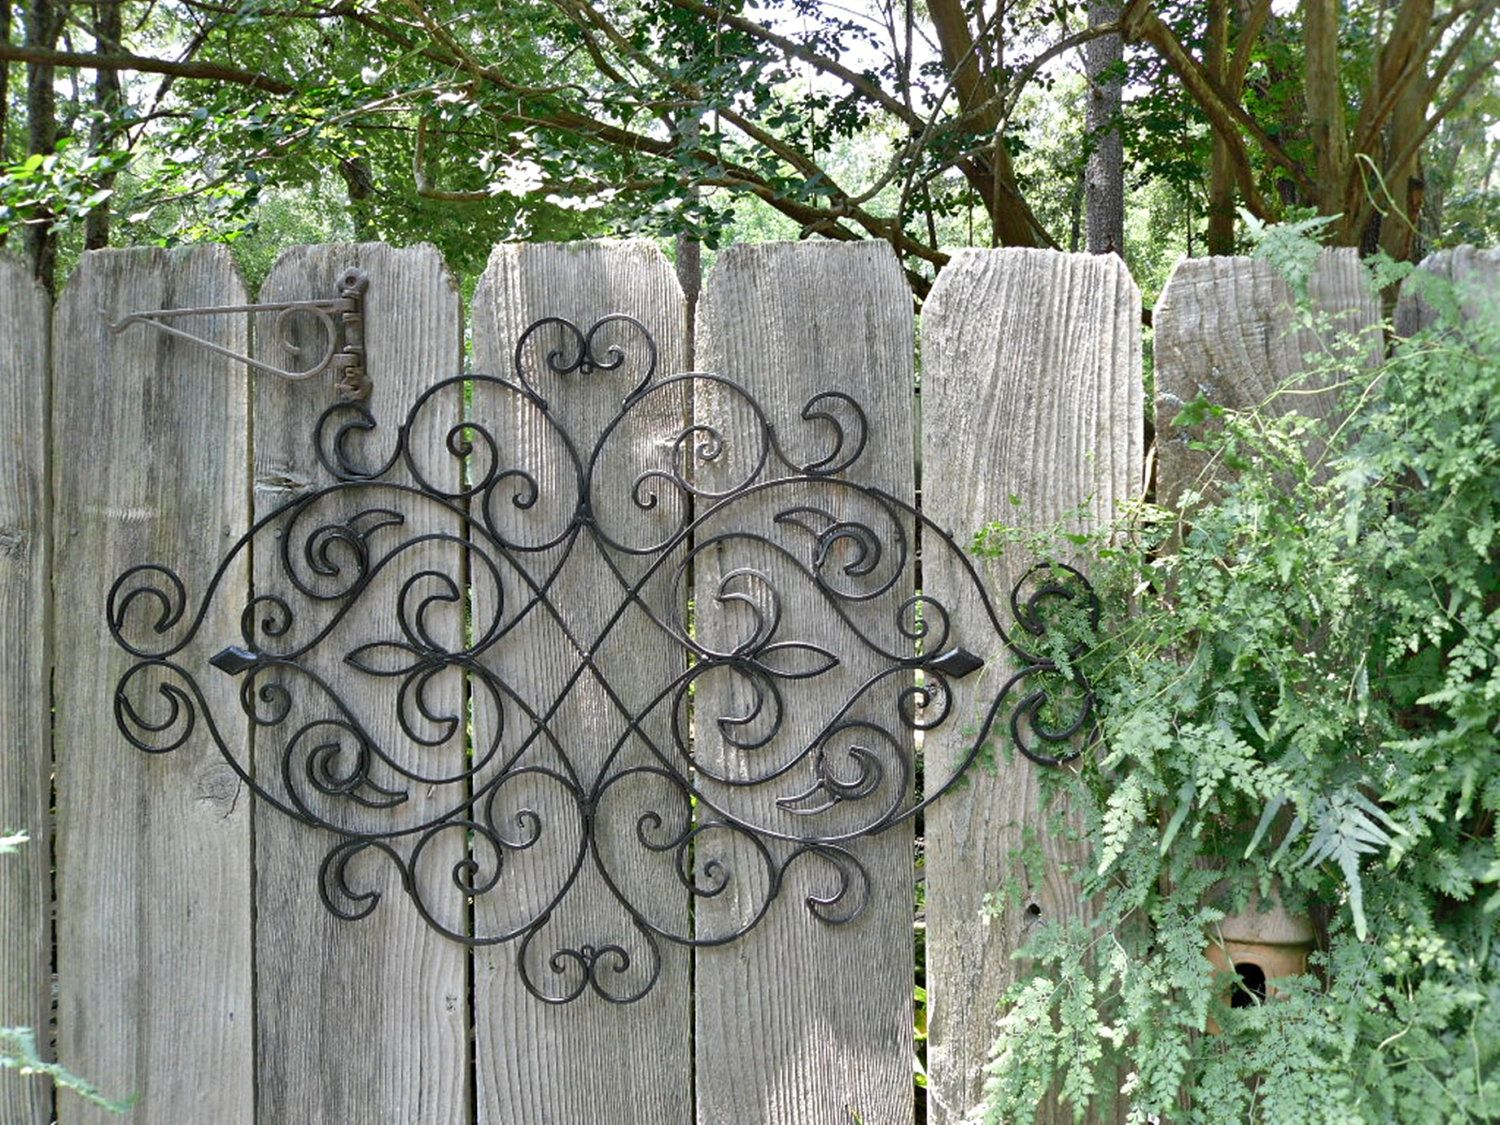 Large Outdoor Wrought Iron Wall Decor Google Image Result For Httpimg3.etsystatic00005989046